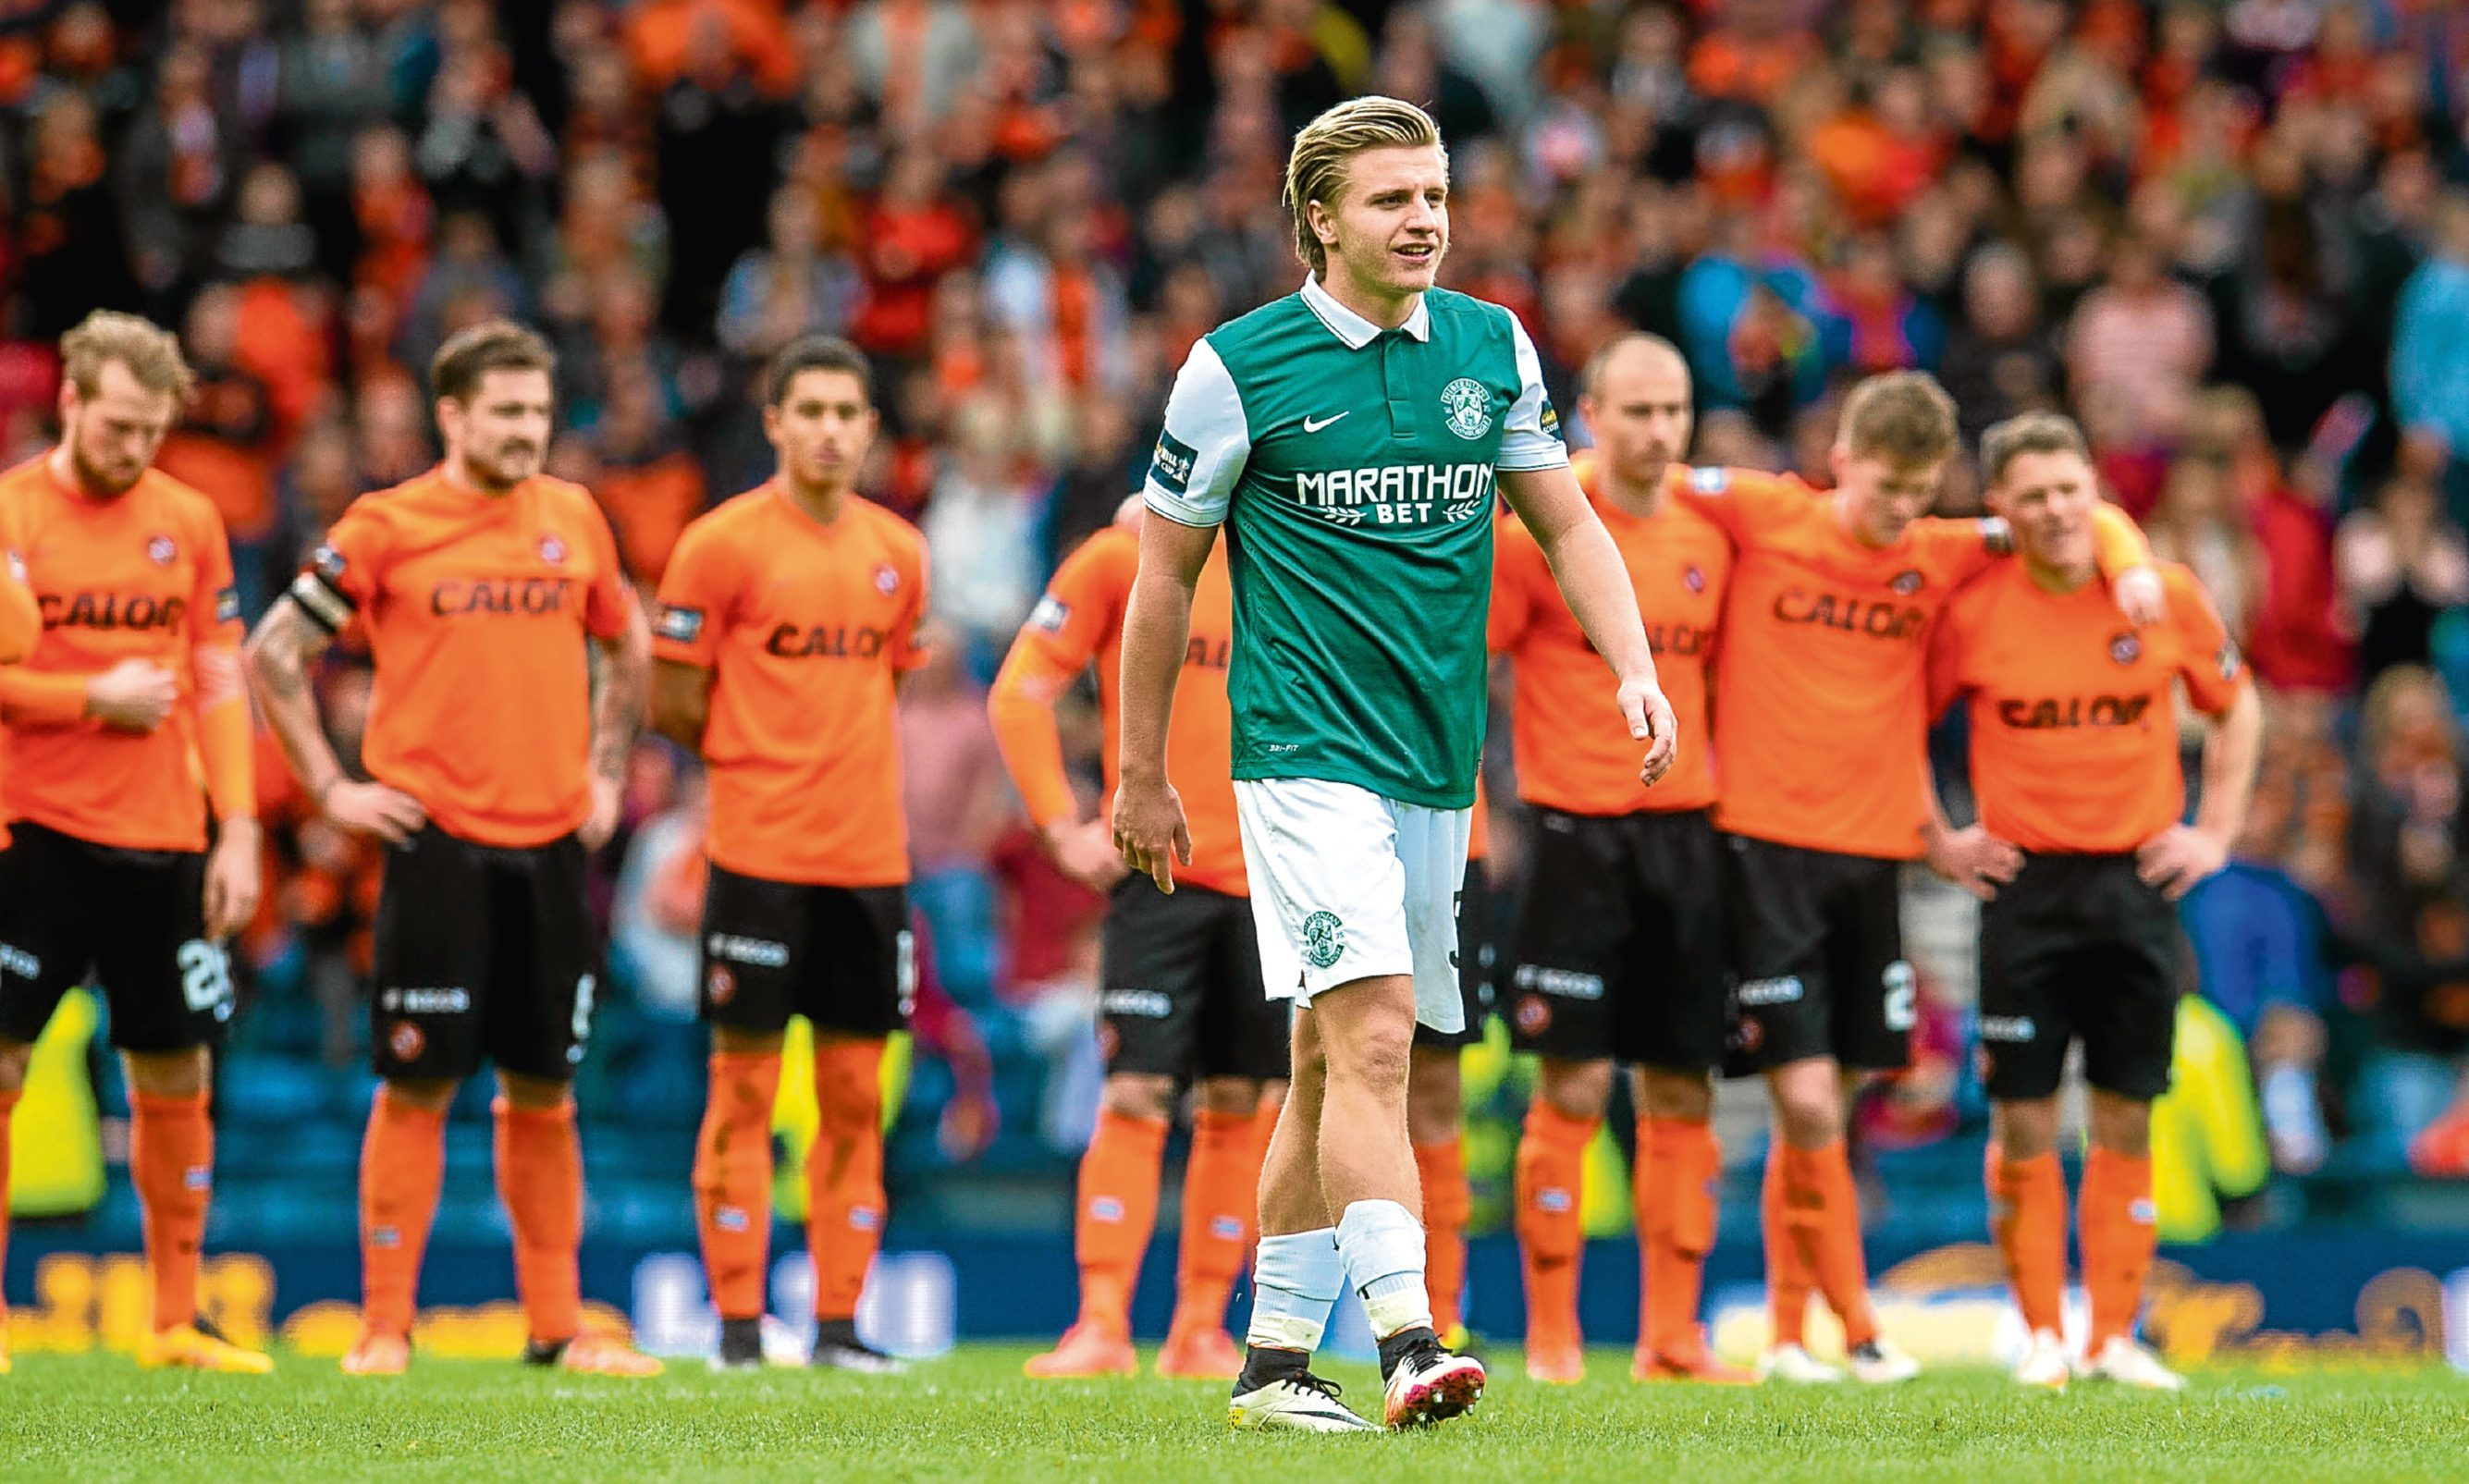 Dundee United were dumped out of both the League and Scottish Cup by Hibs last season. Pictured is Hibs striker Jason Cummings stepping up to take the winning spot-kick at Hampden in April.